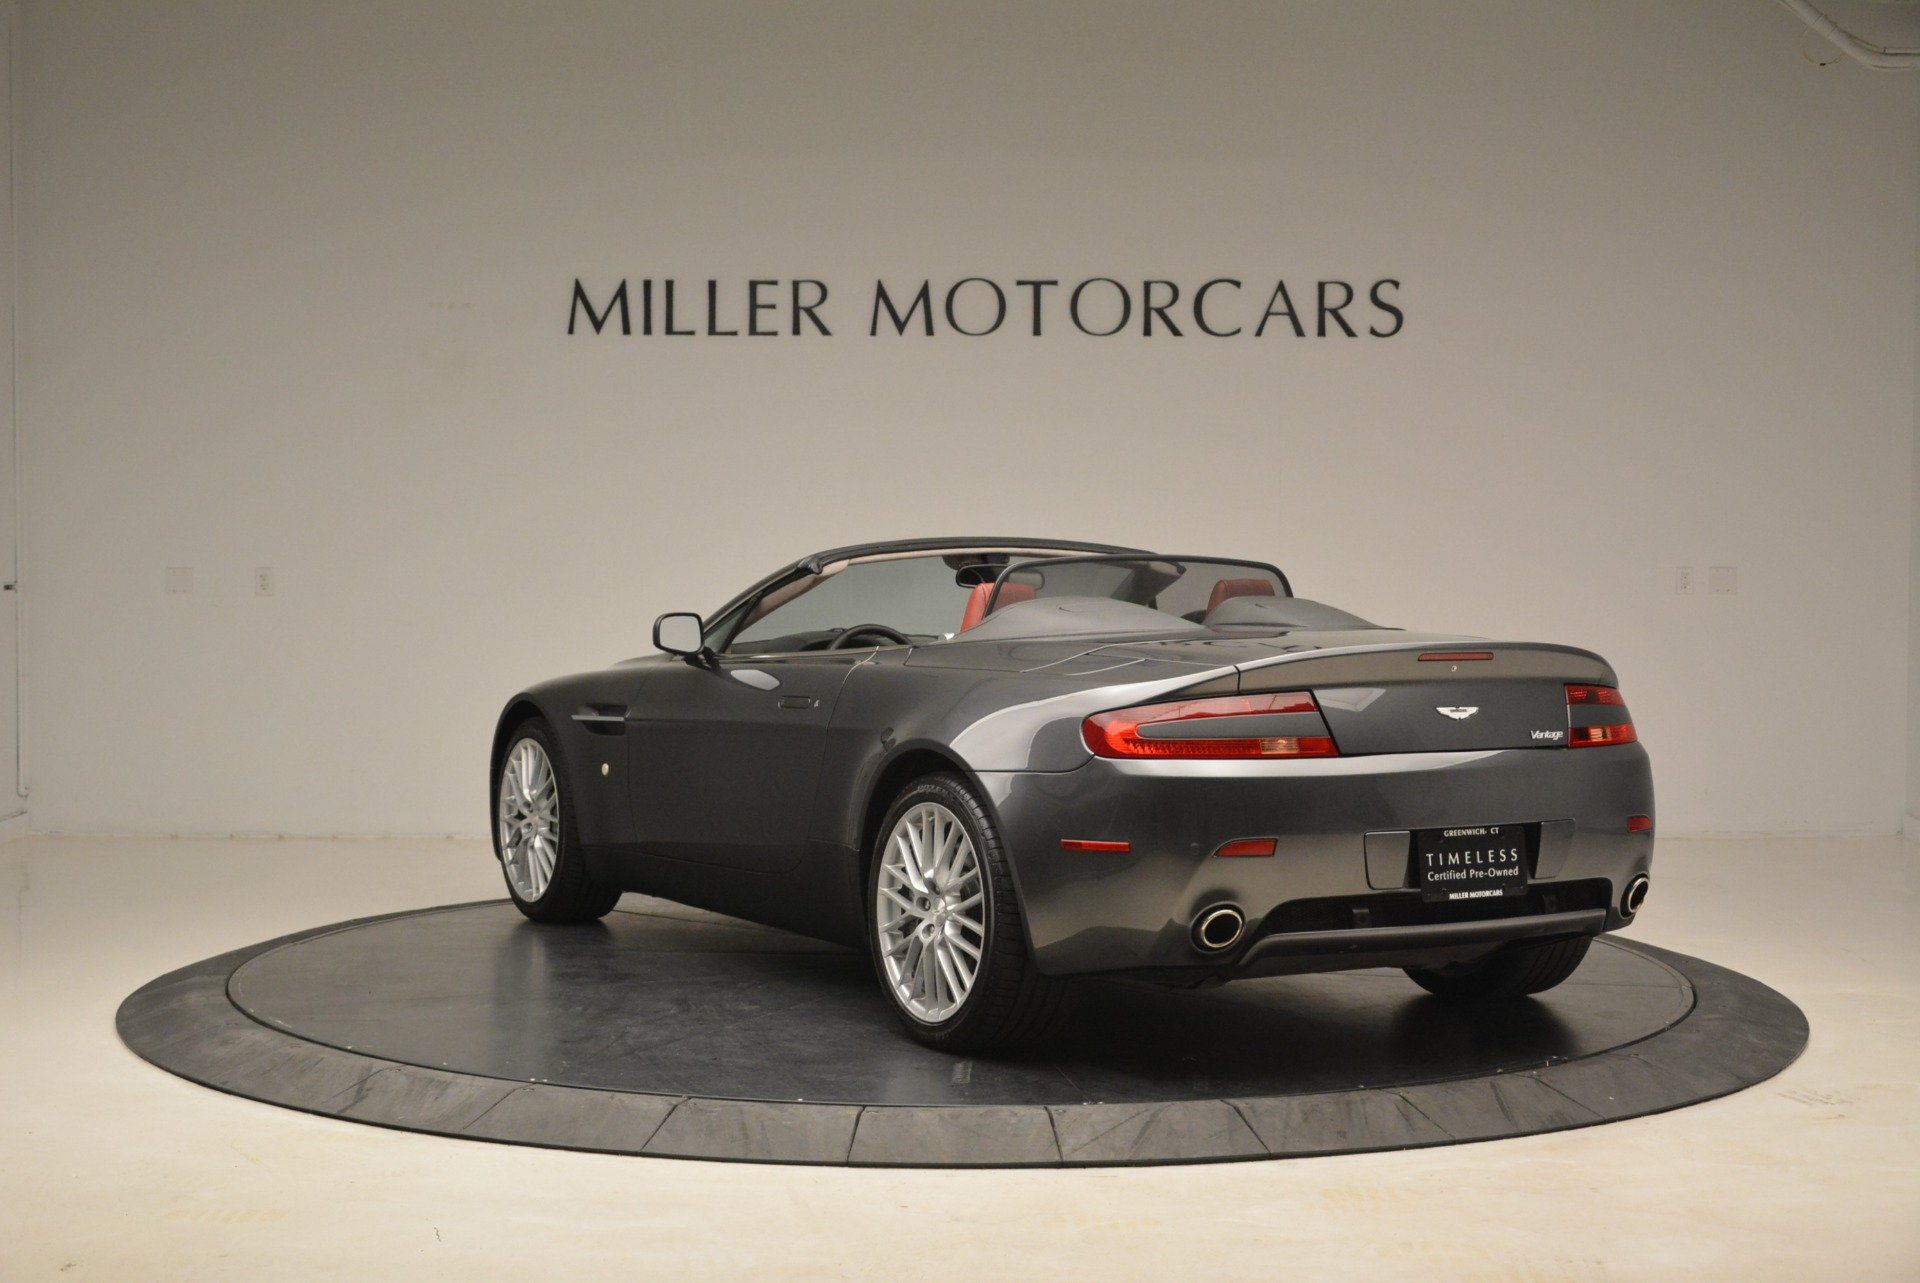 Used 2009 Aston Martin V8 Vantage Roadster For Sale In Westport, CT 2123_p5